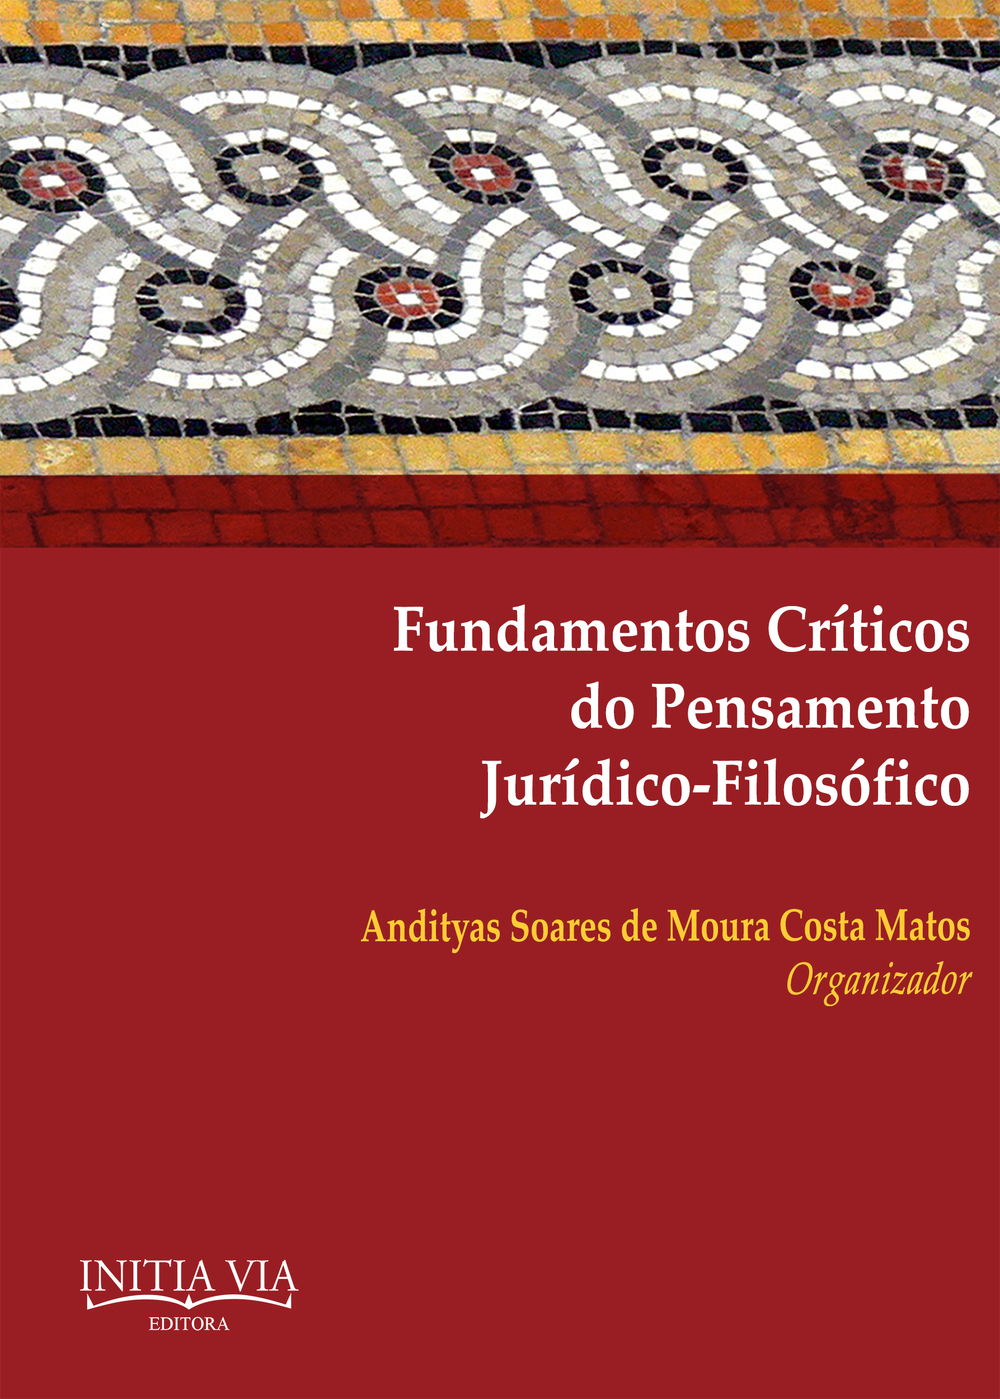 andityas_capa_fundamentos_kindle.jpg